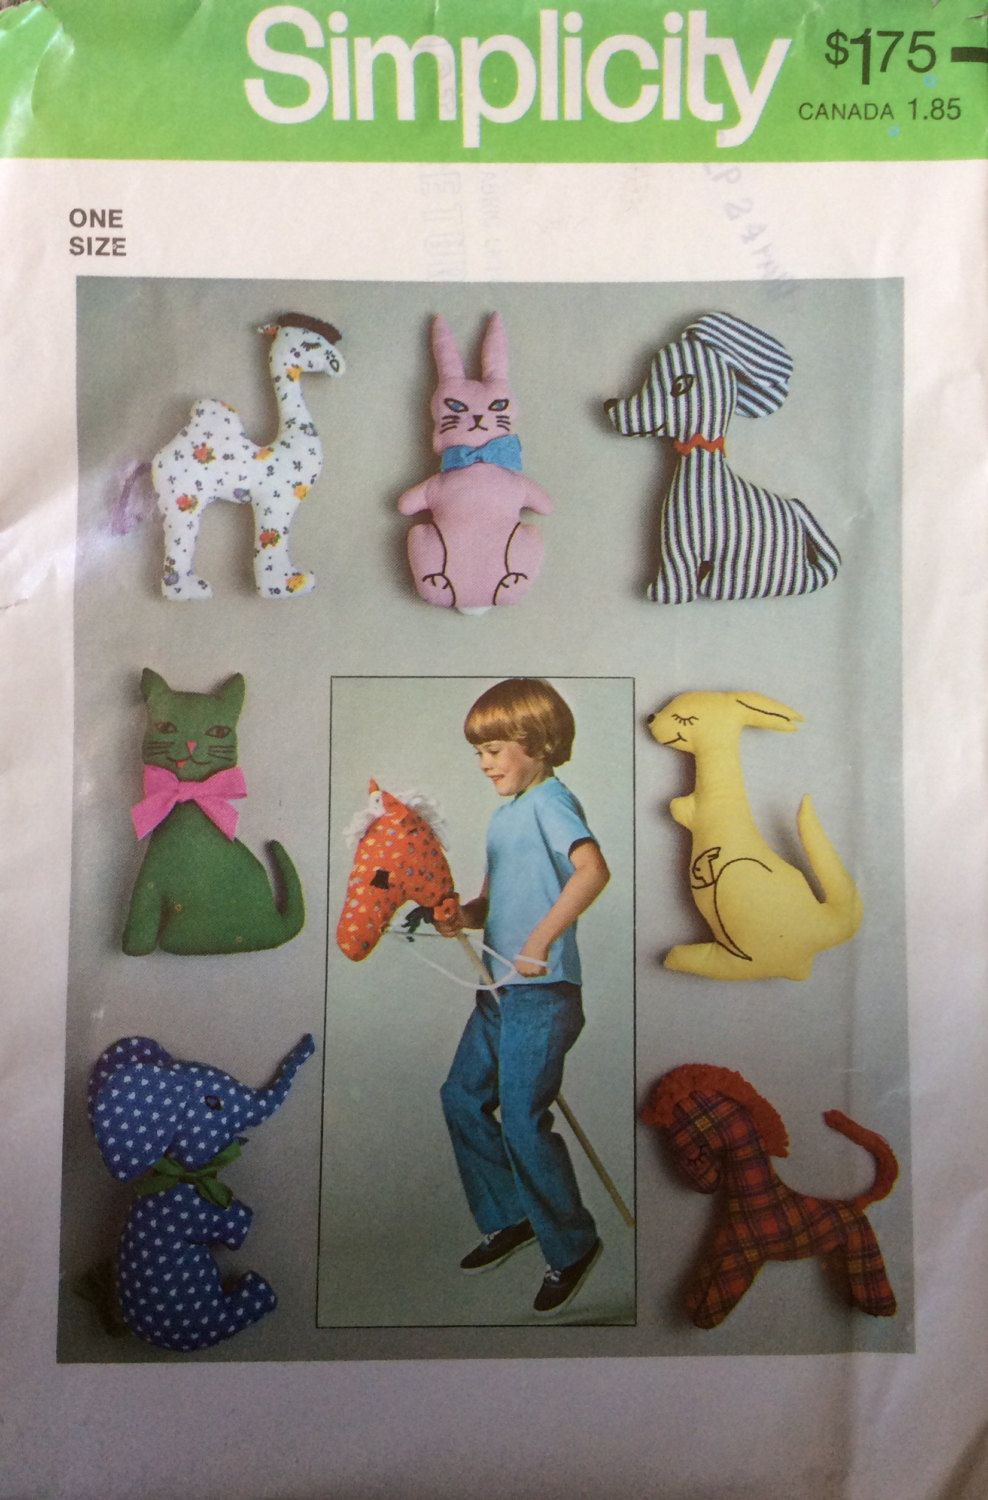 Simplicity 7744 UNCUT Set of Stuffed Toys by